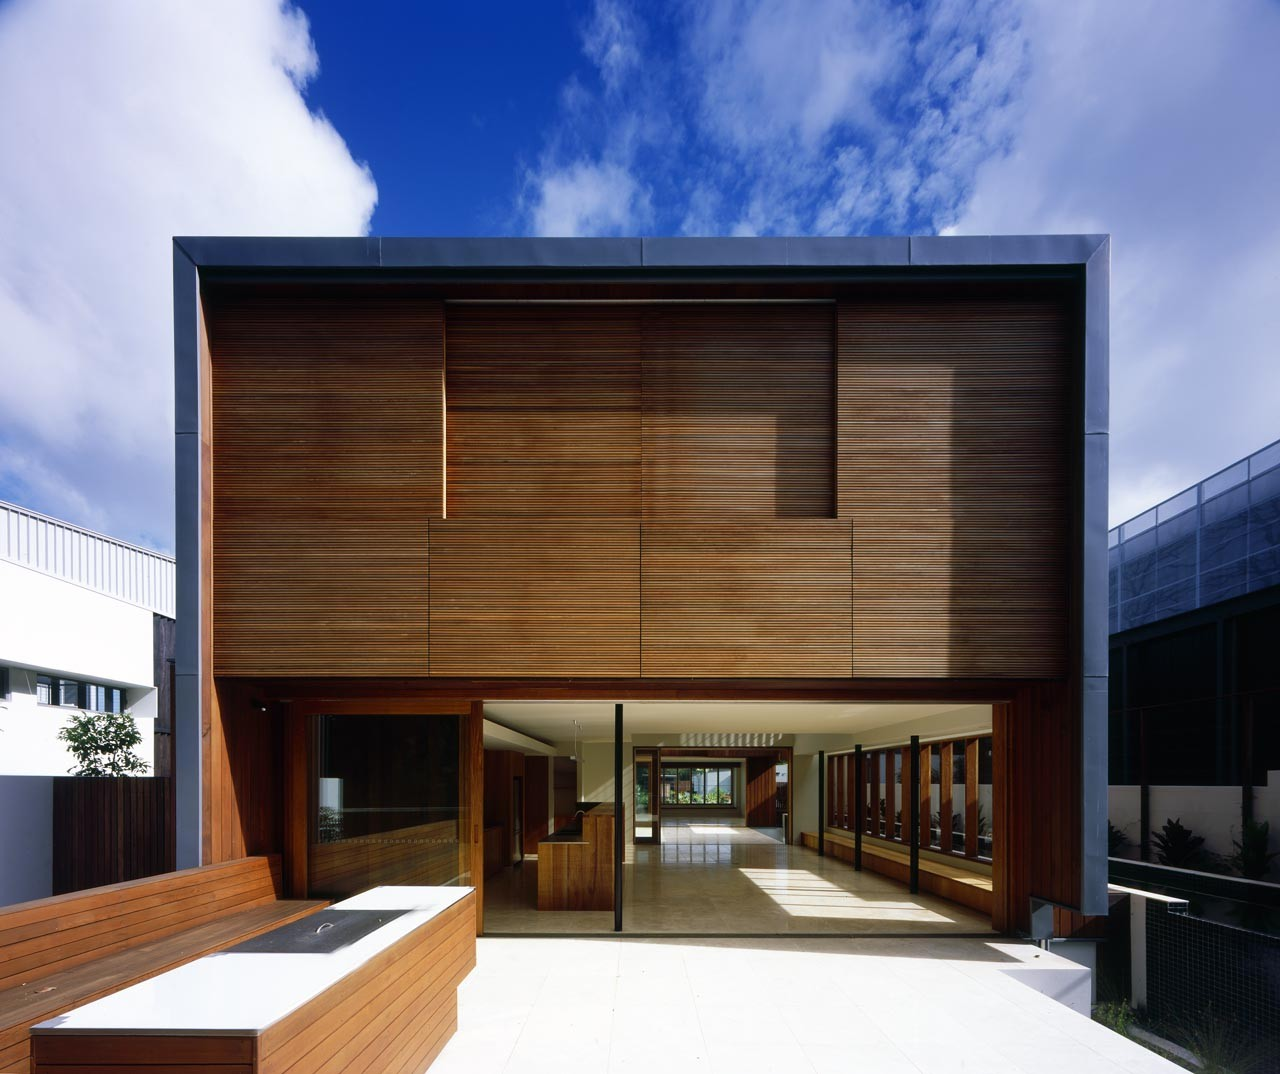 Elysium / Richard Kirk Architect, © Scott Burrows